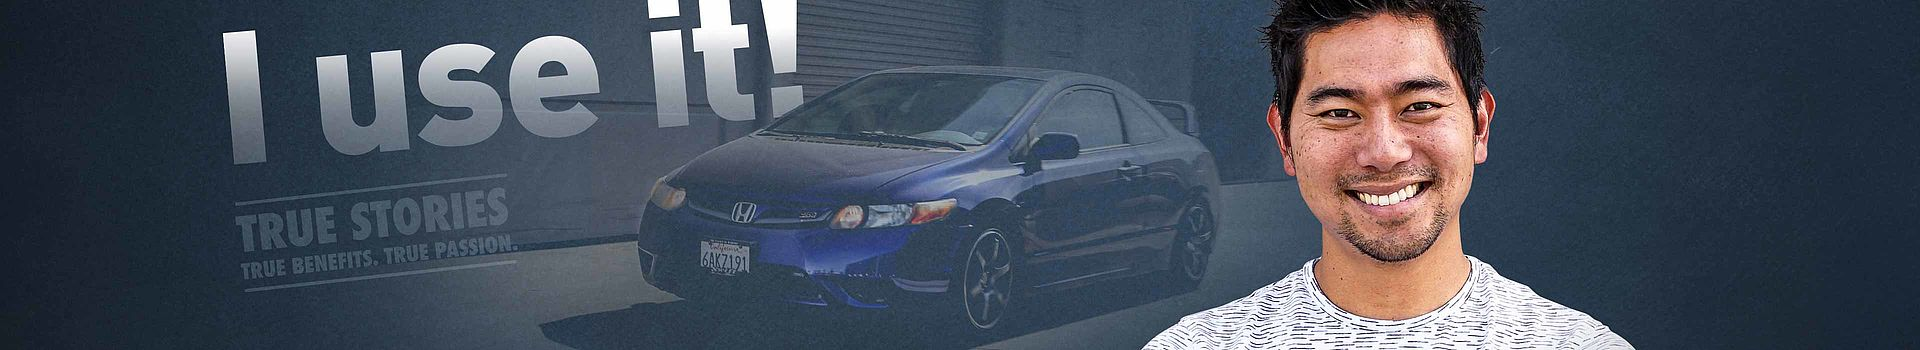 Honda Civic enthusiast and LIQUI MOLY testimonial.